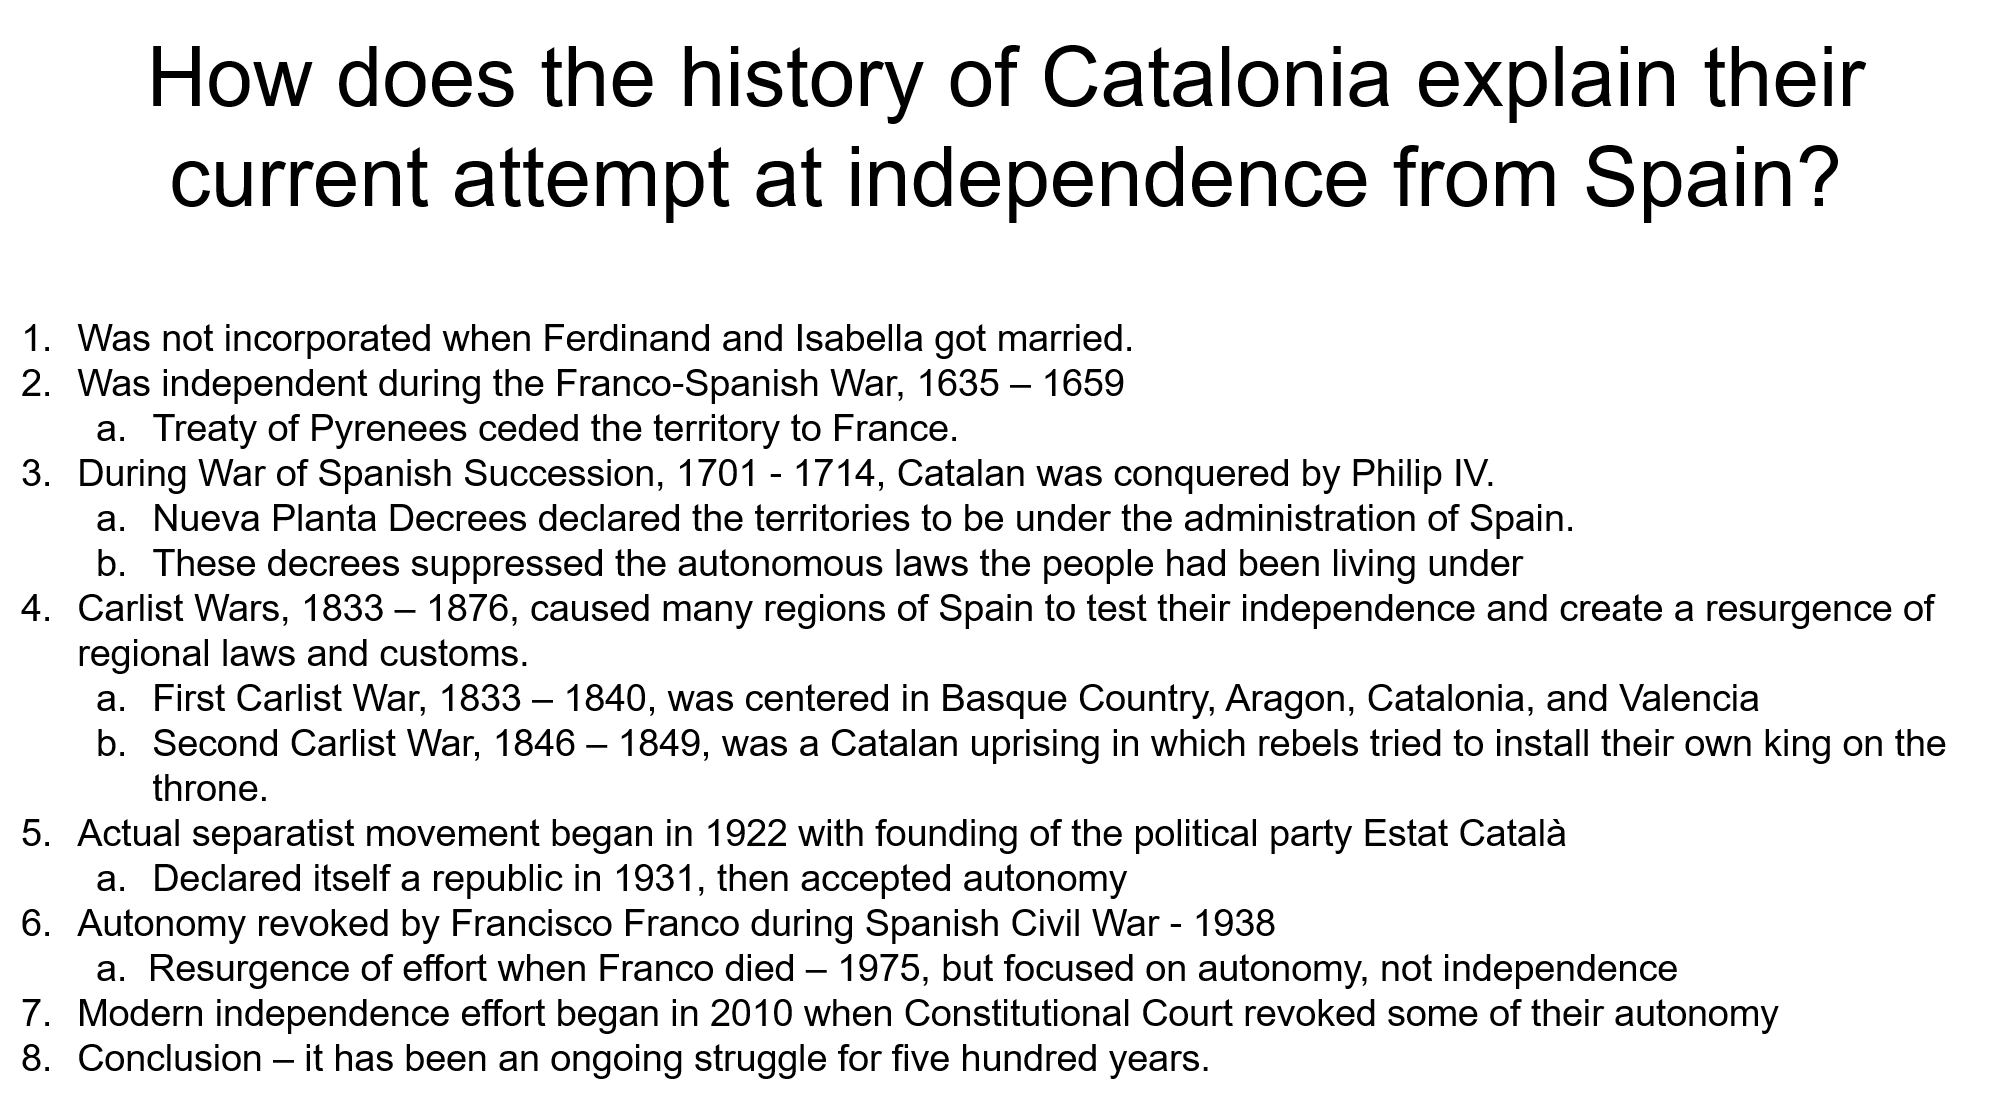 Catalan example outline